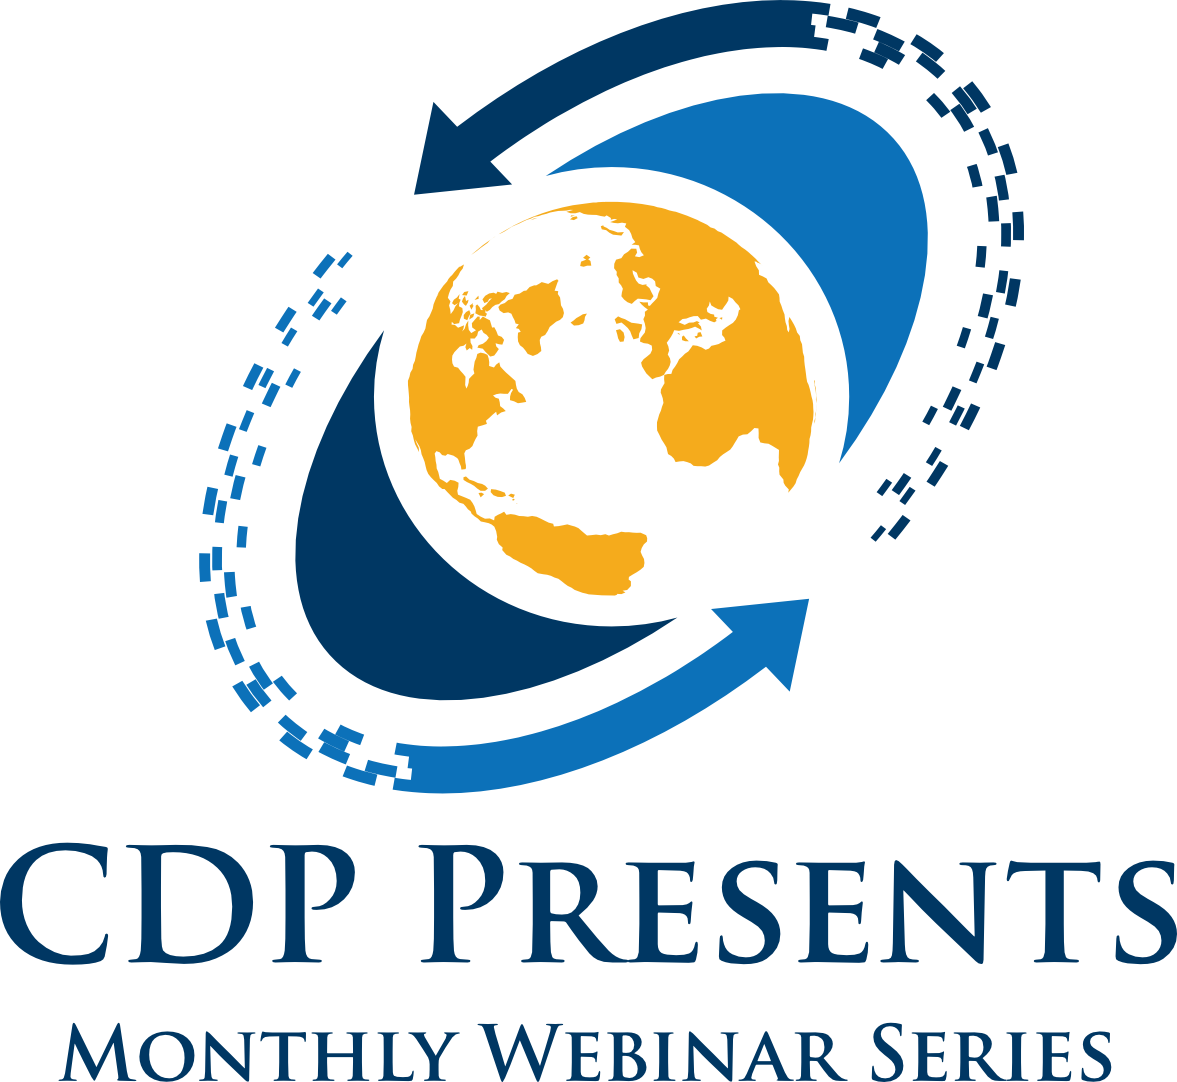 CDP Presents - Monthly Webinar Series | Center for